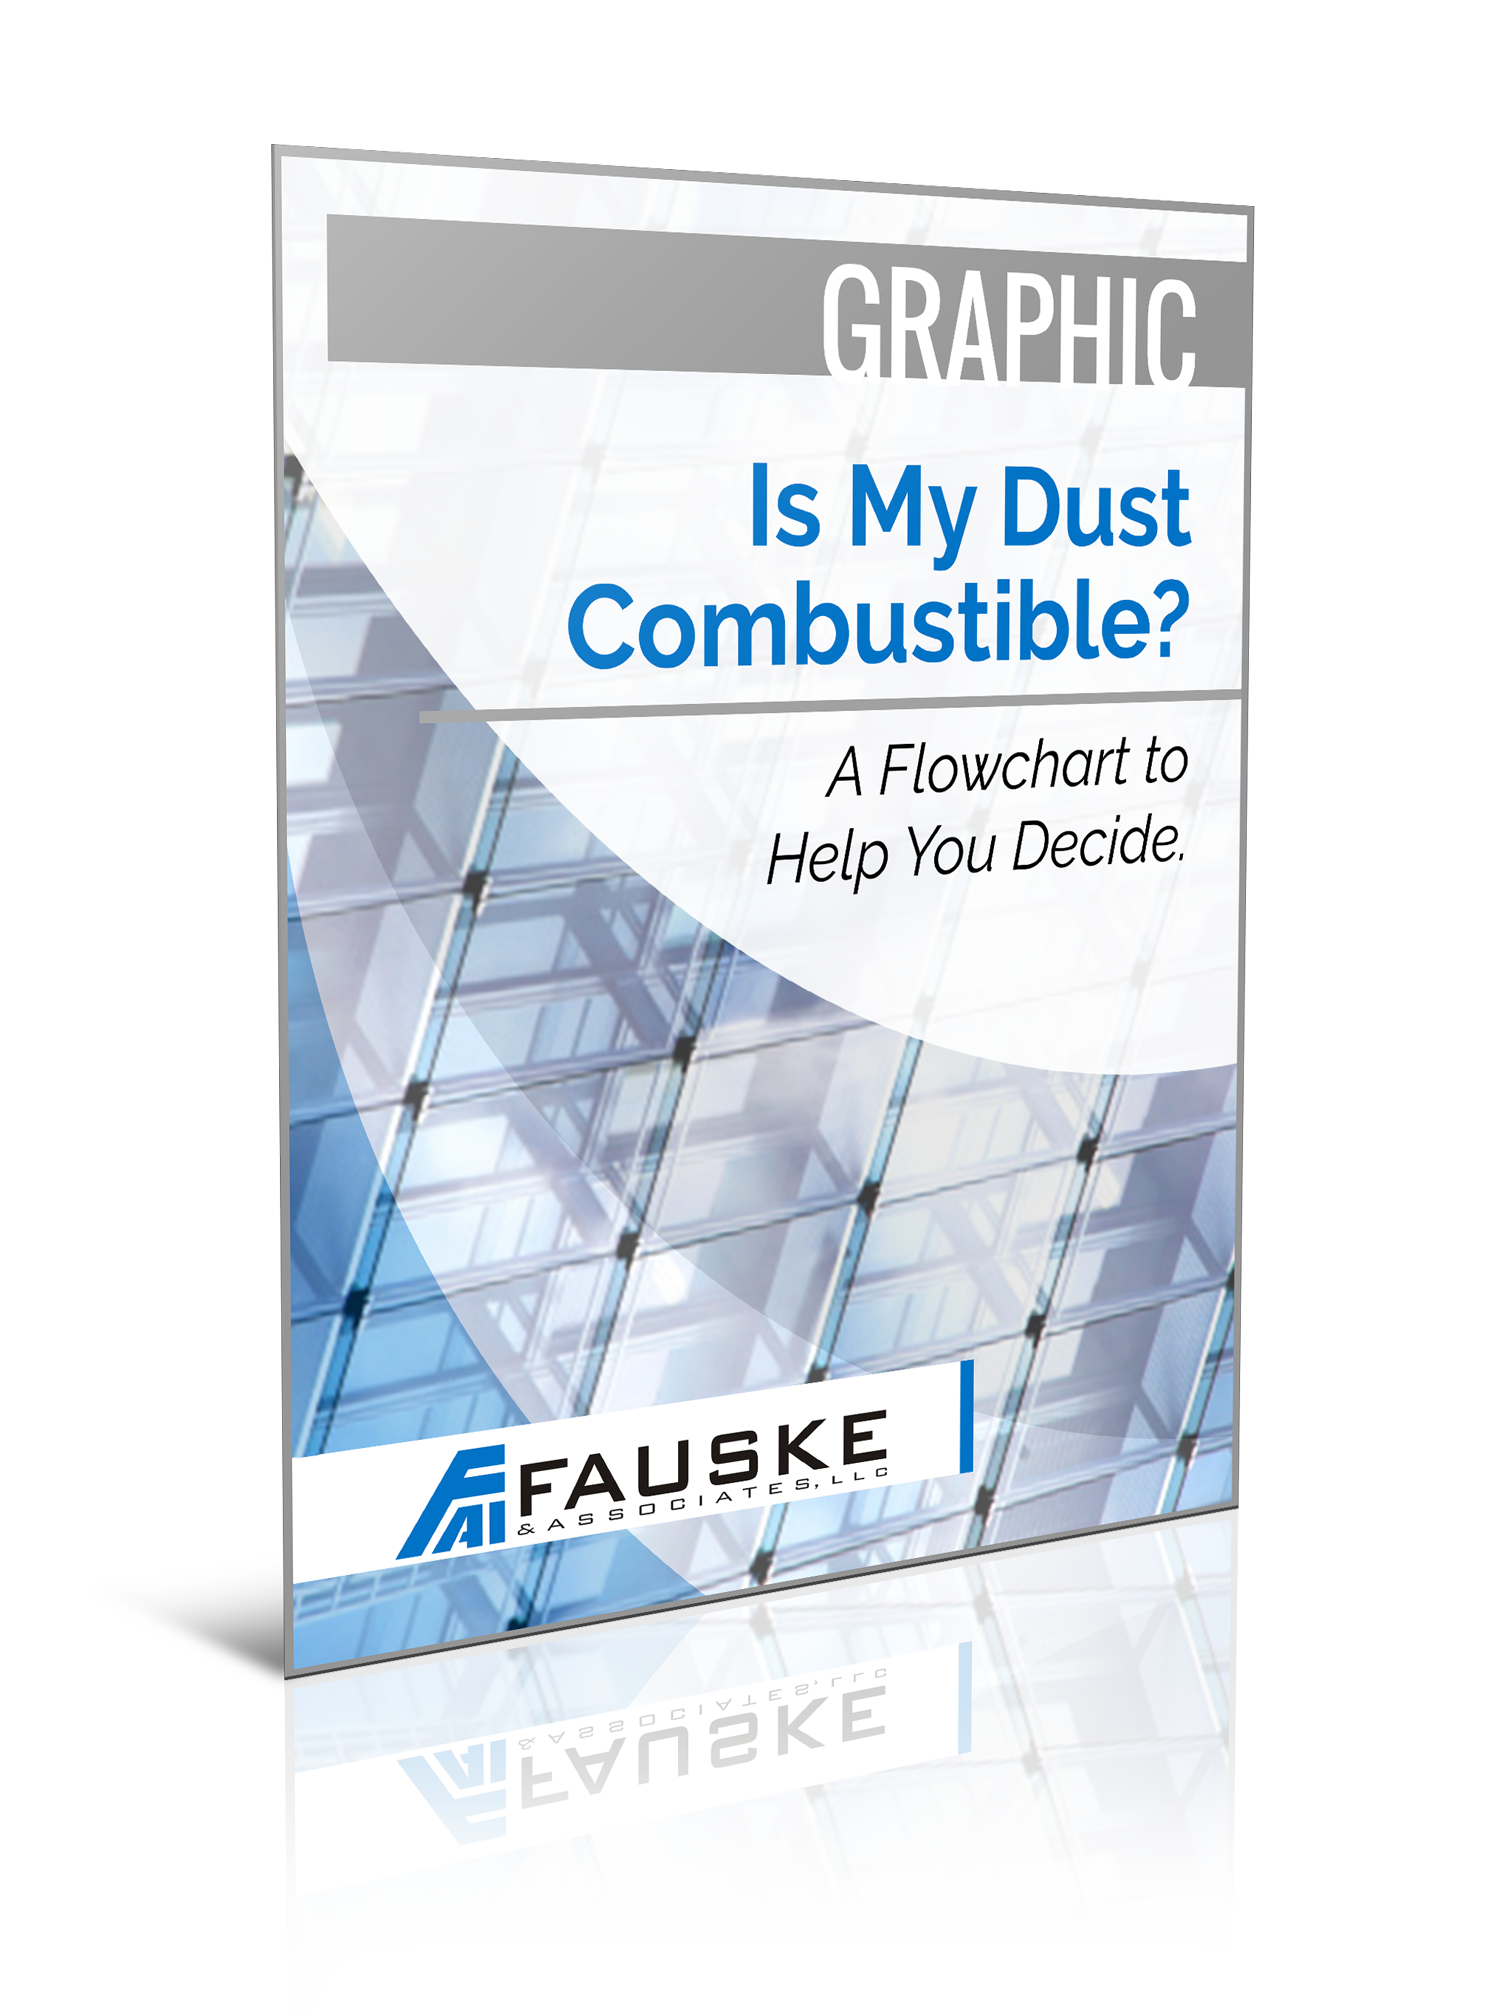 fauske-gr-cover-combustible-workflow.png